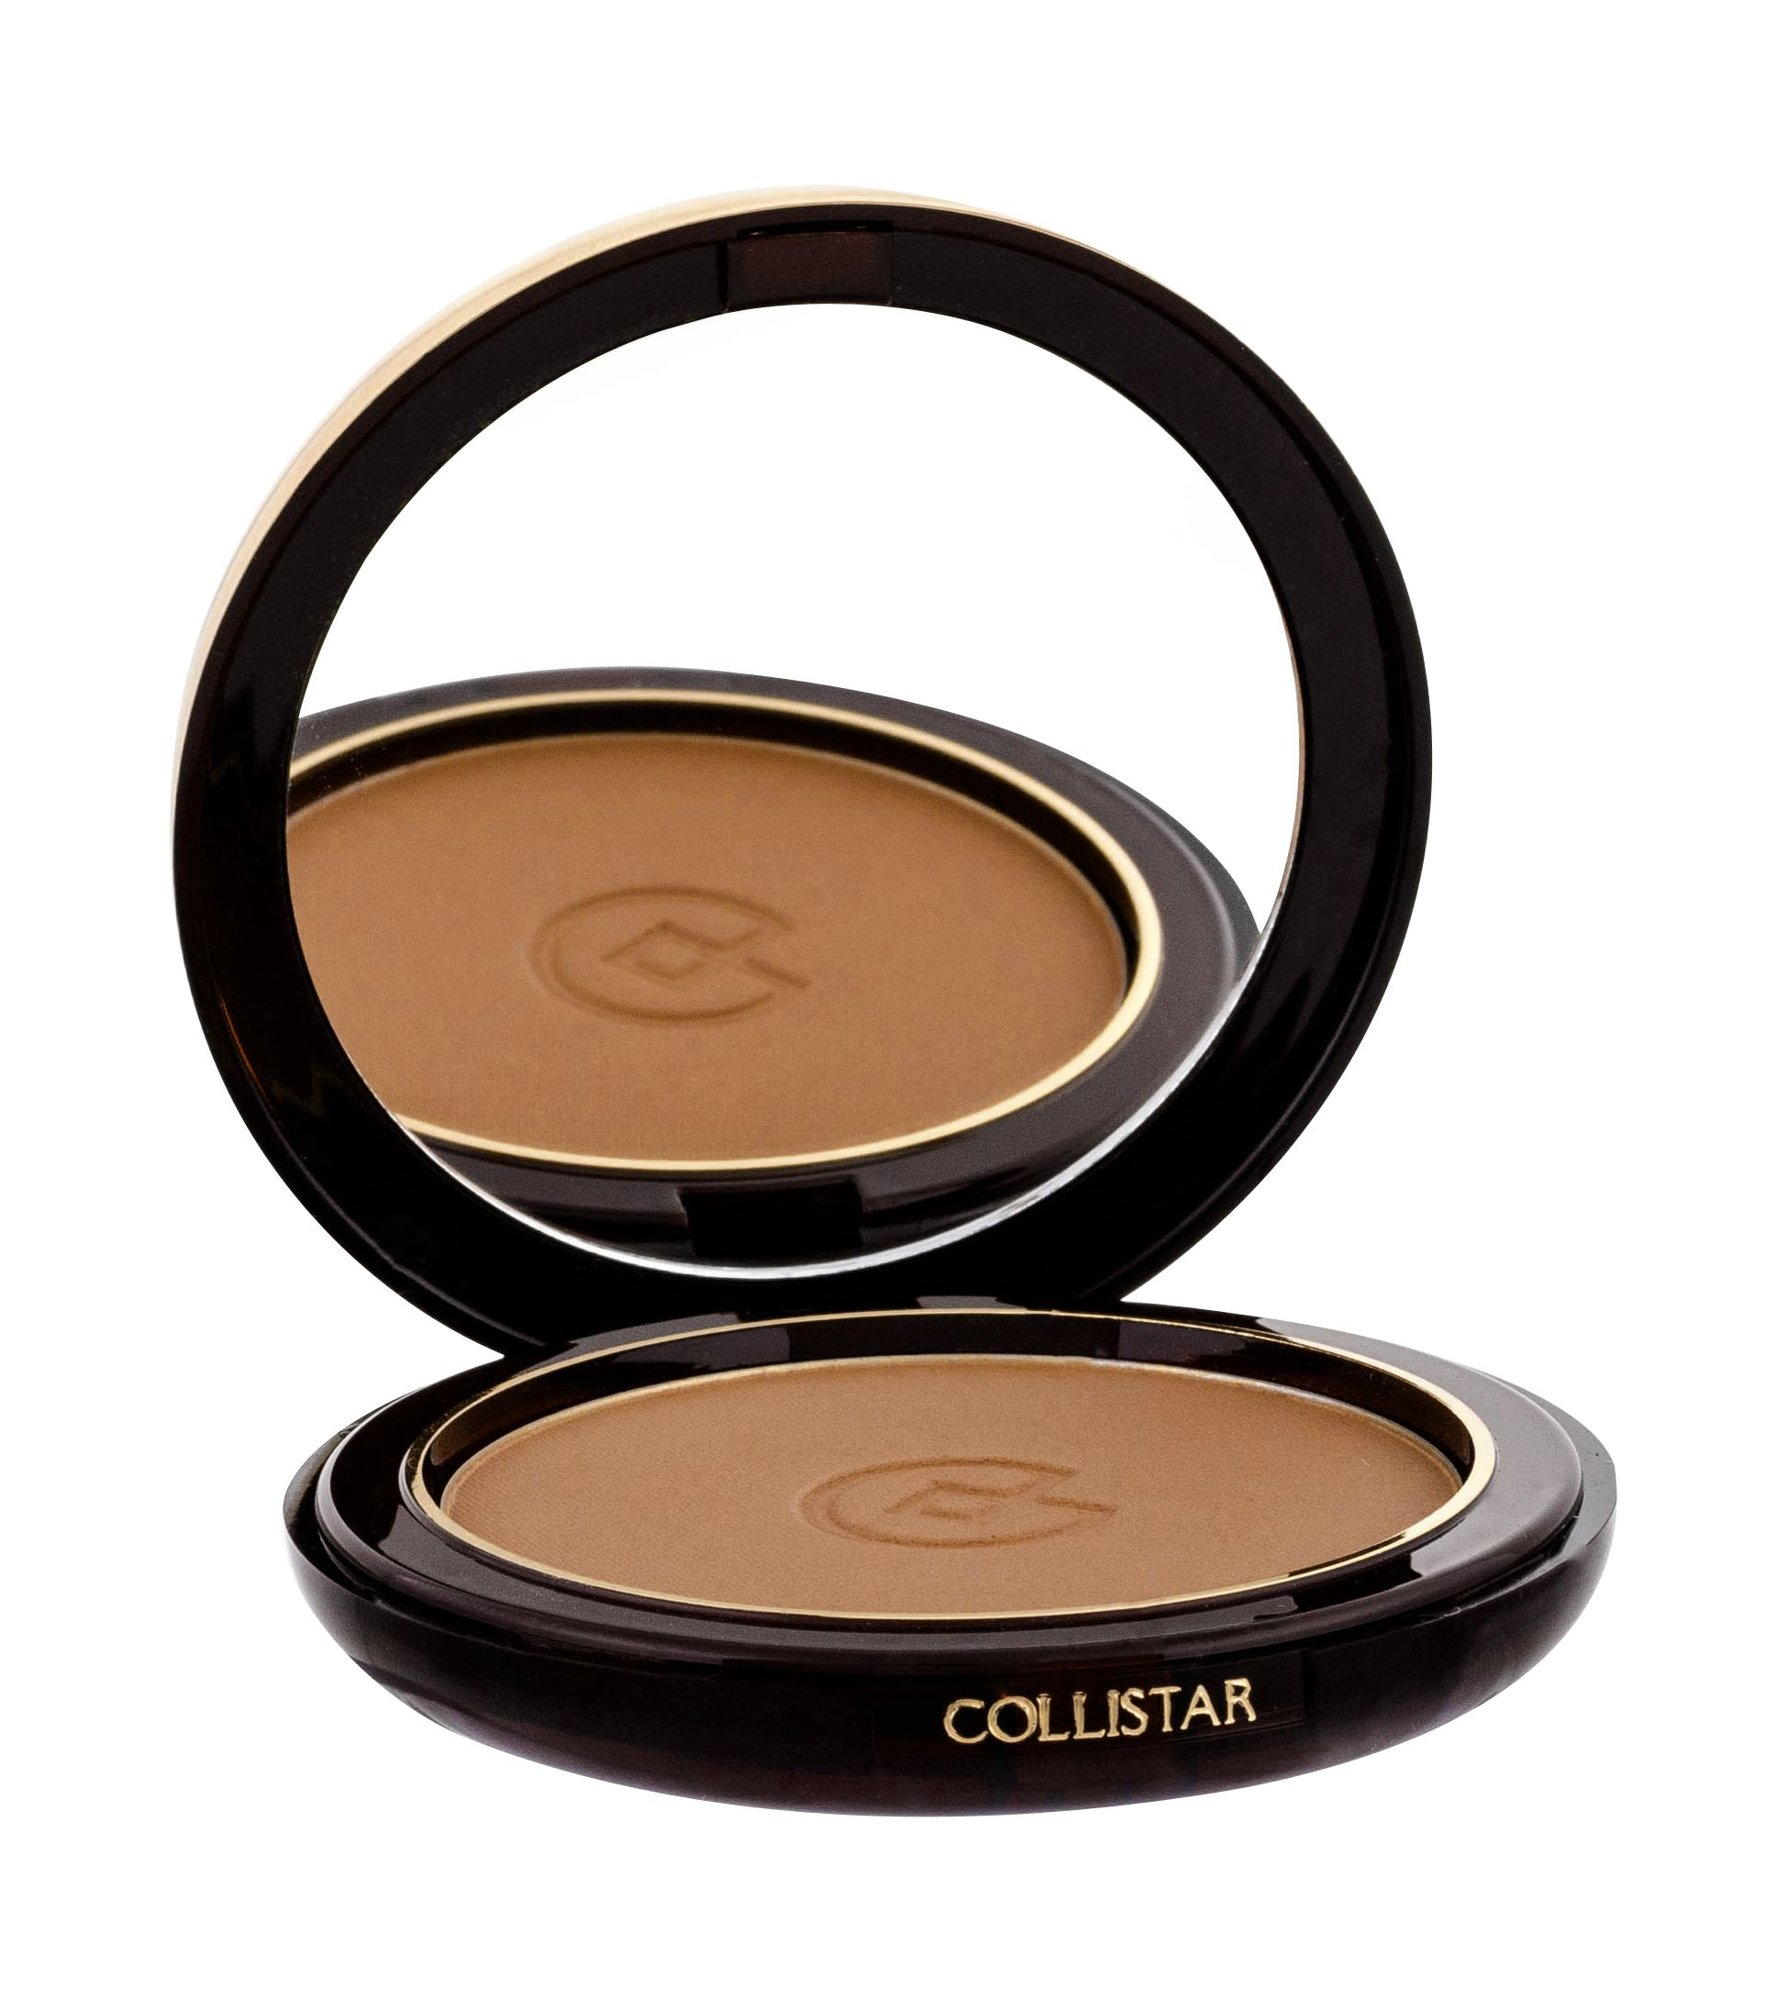 Collistar Silk Effect Bronzing Powder Cosmetic 10ml 4.4 Hawaii Mat